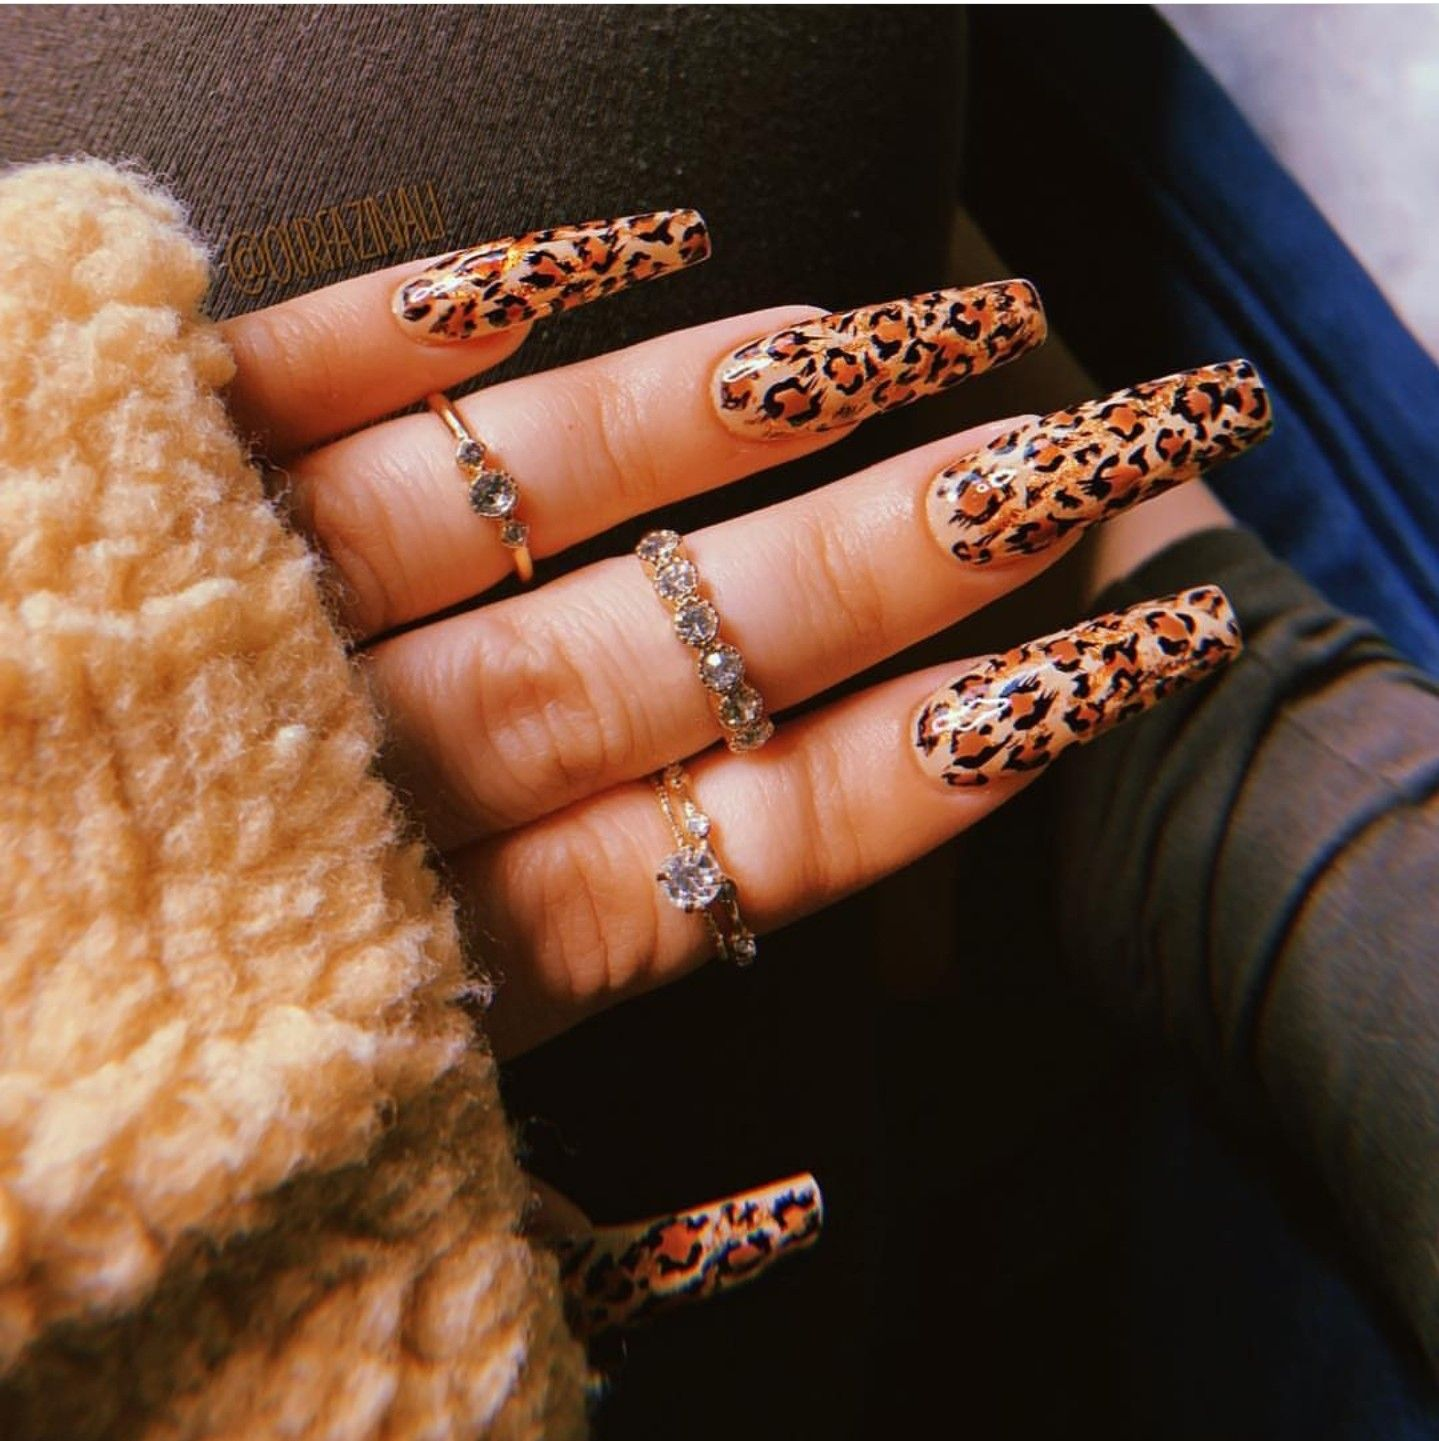 Leopard Print Nails Not My Work Follow Ariellanita For More Shiny Nails Designs Leopard Print Nails Leopard Nails